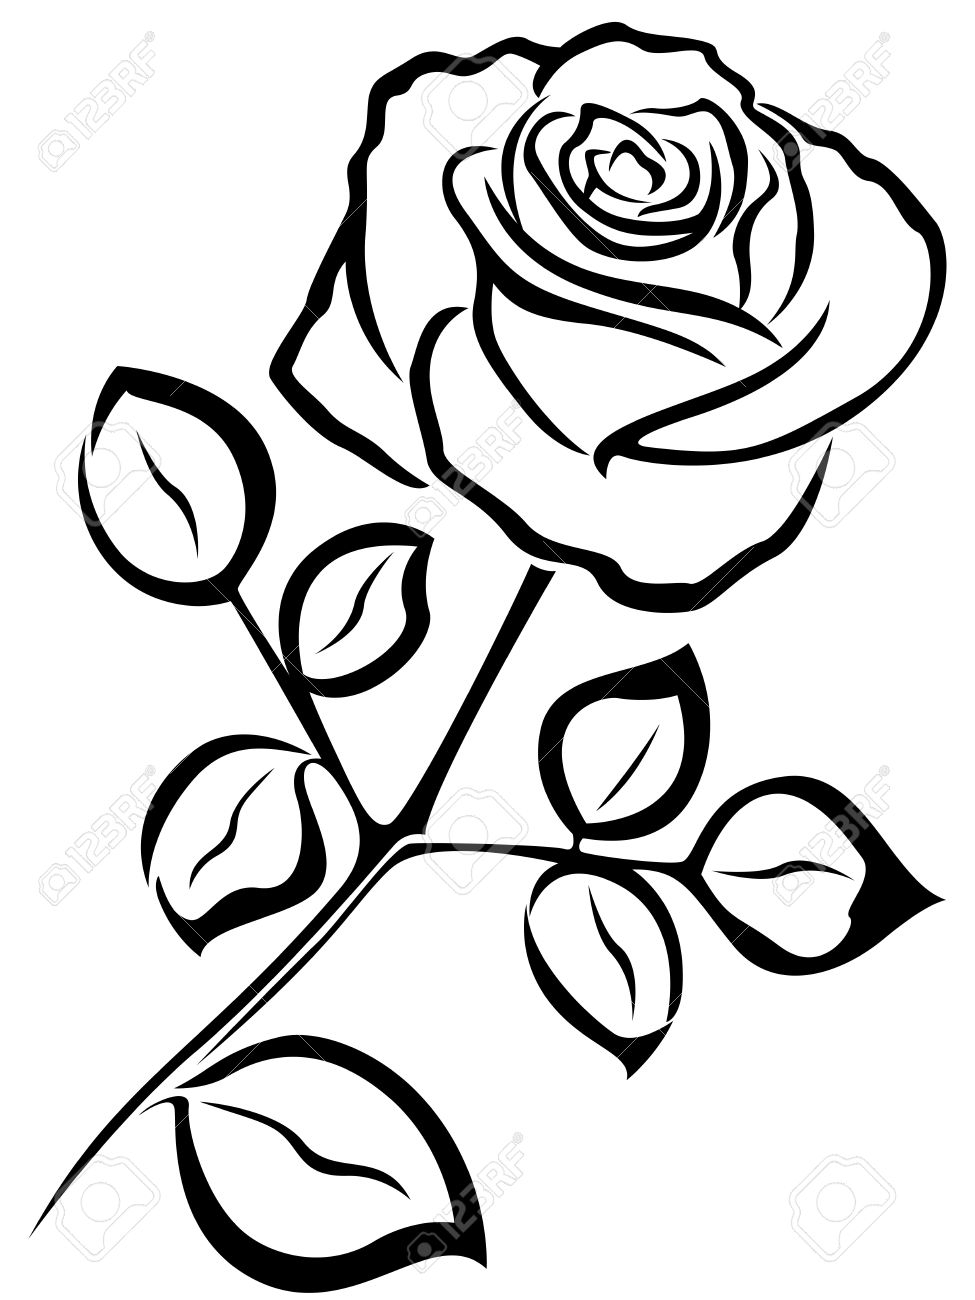 975x1300 Line Drawing Of Rose Flower Black Vector Outline Of Single Rose